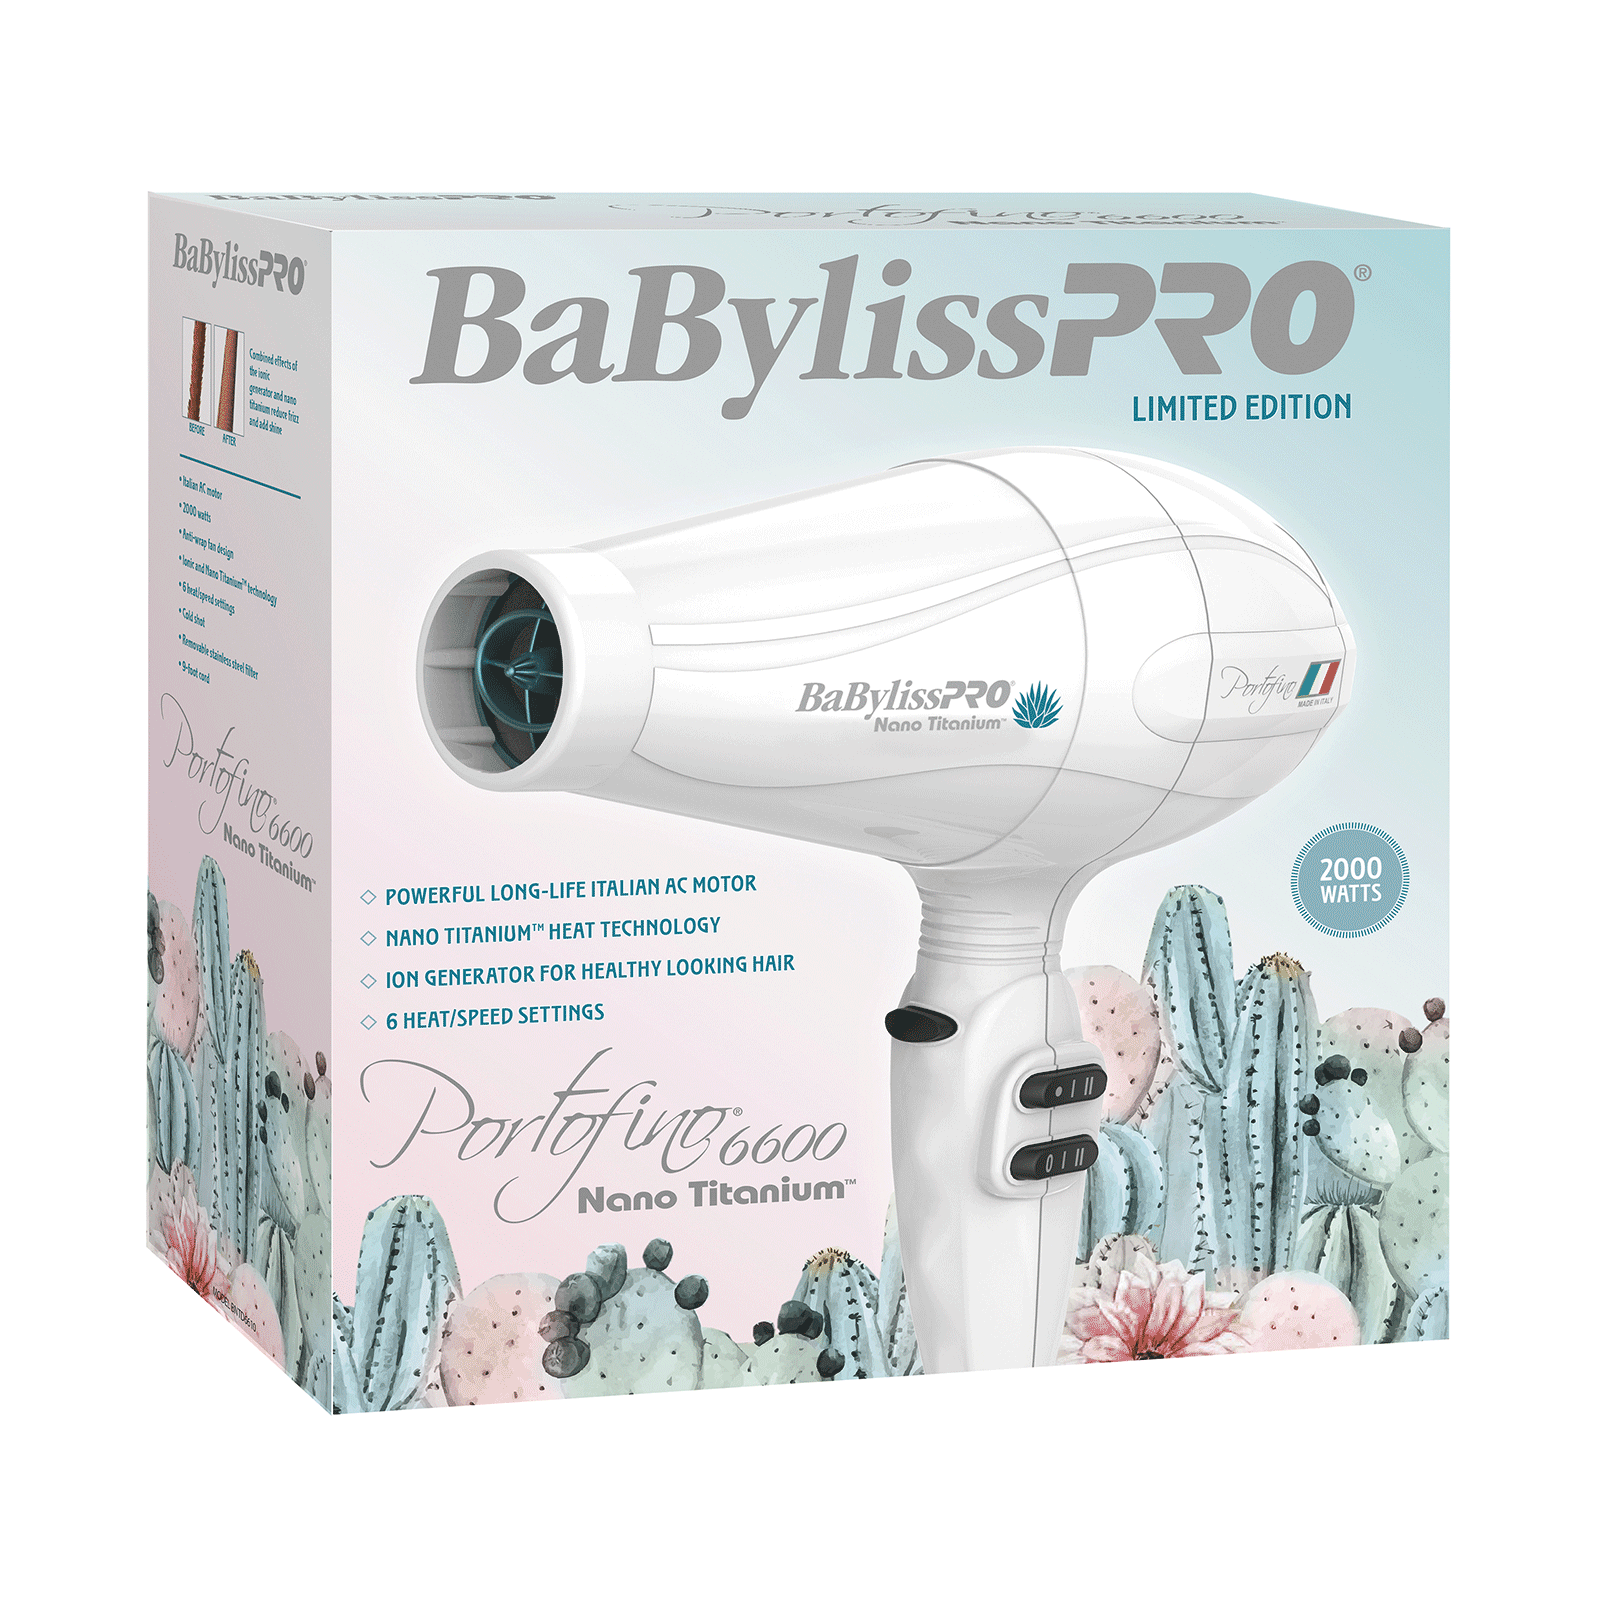 BaBylissPRO Desert Bloom Nano Titanium Dryer